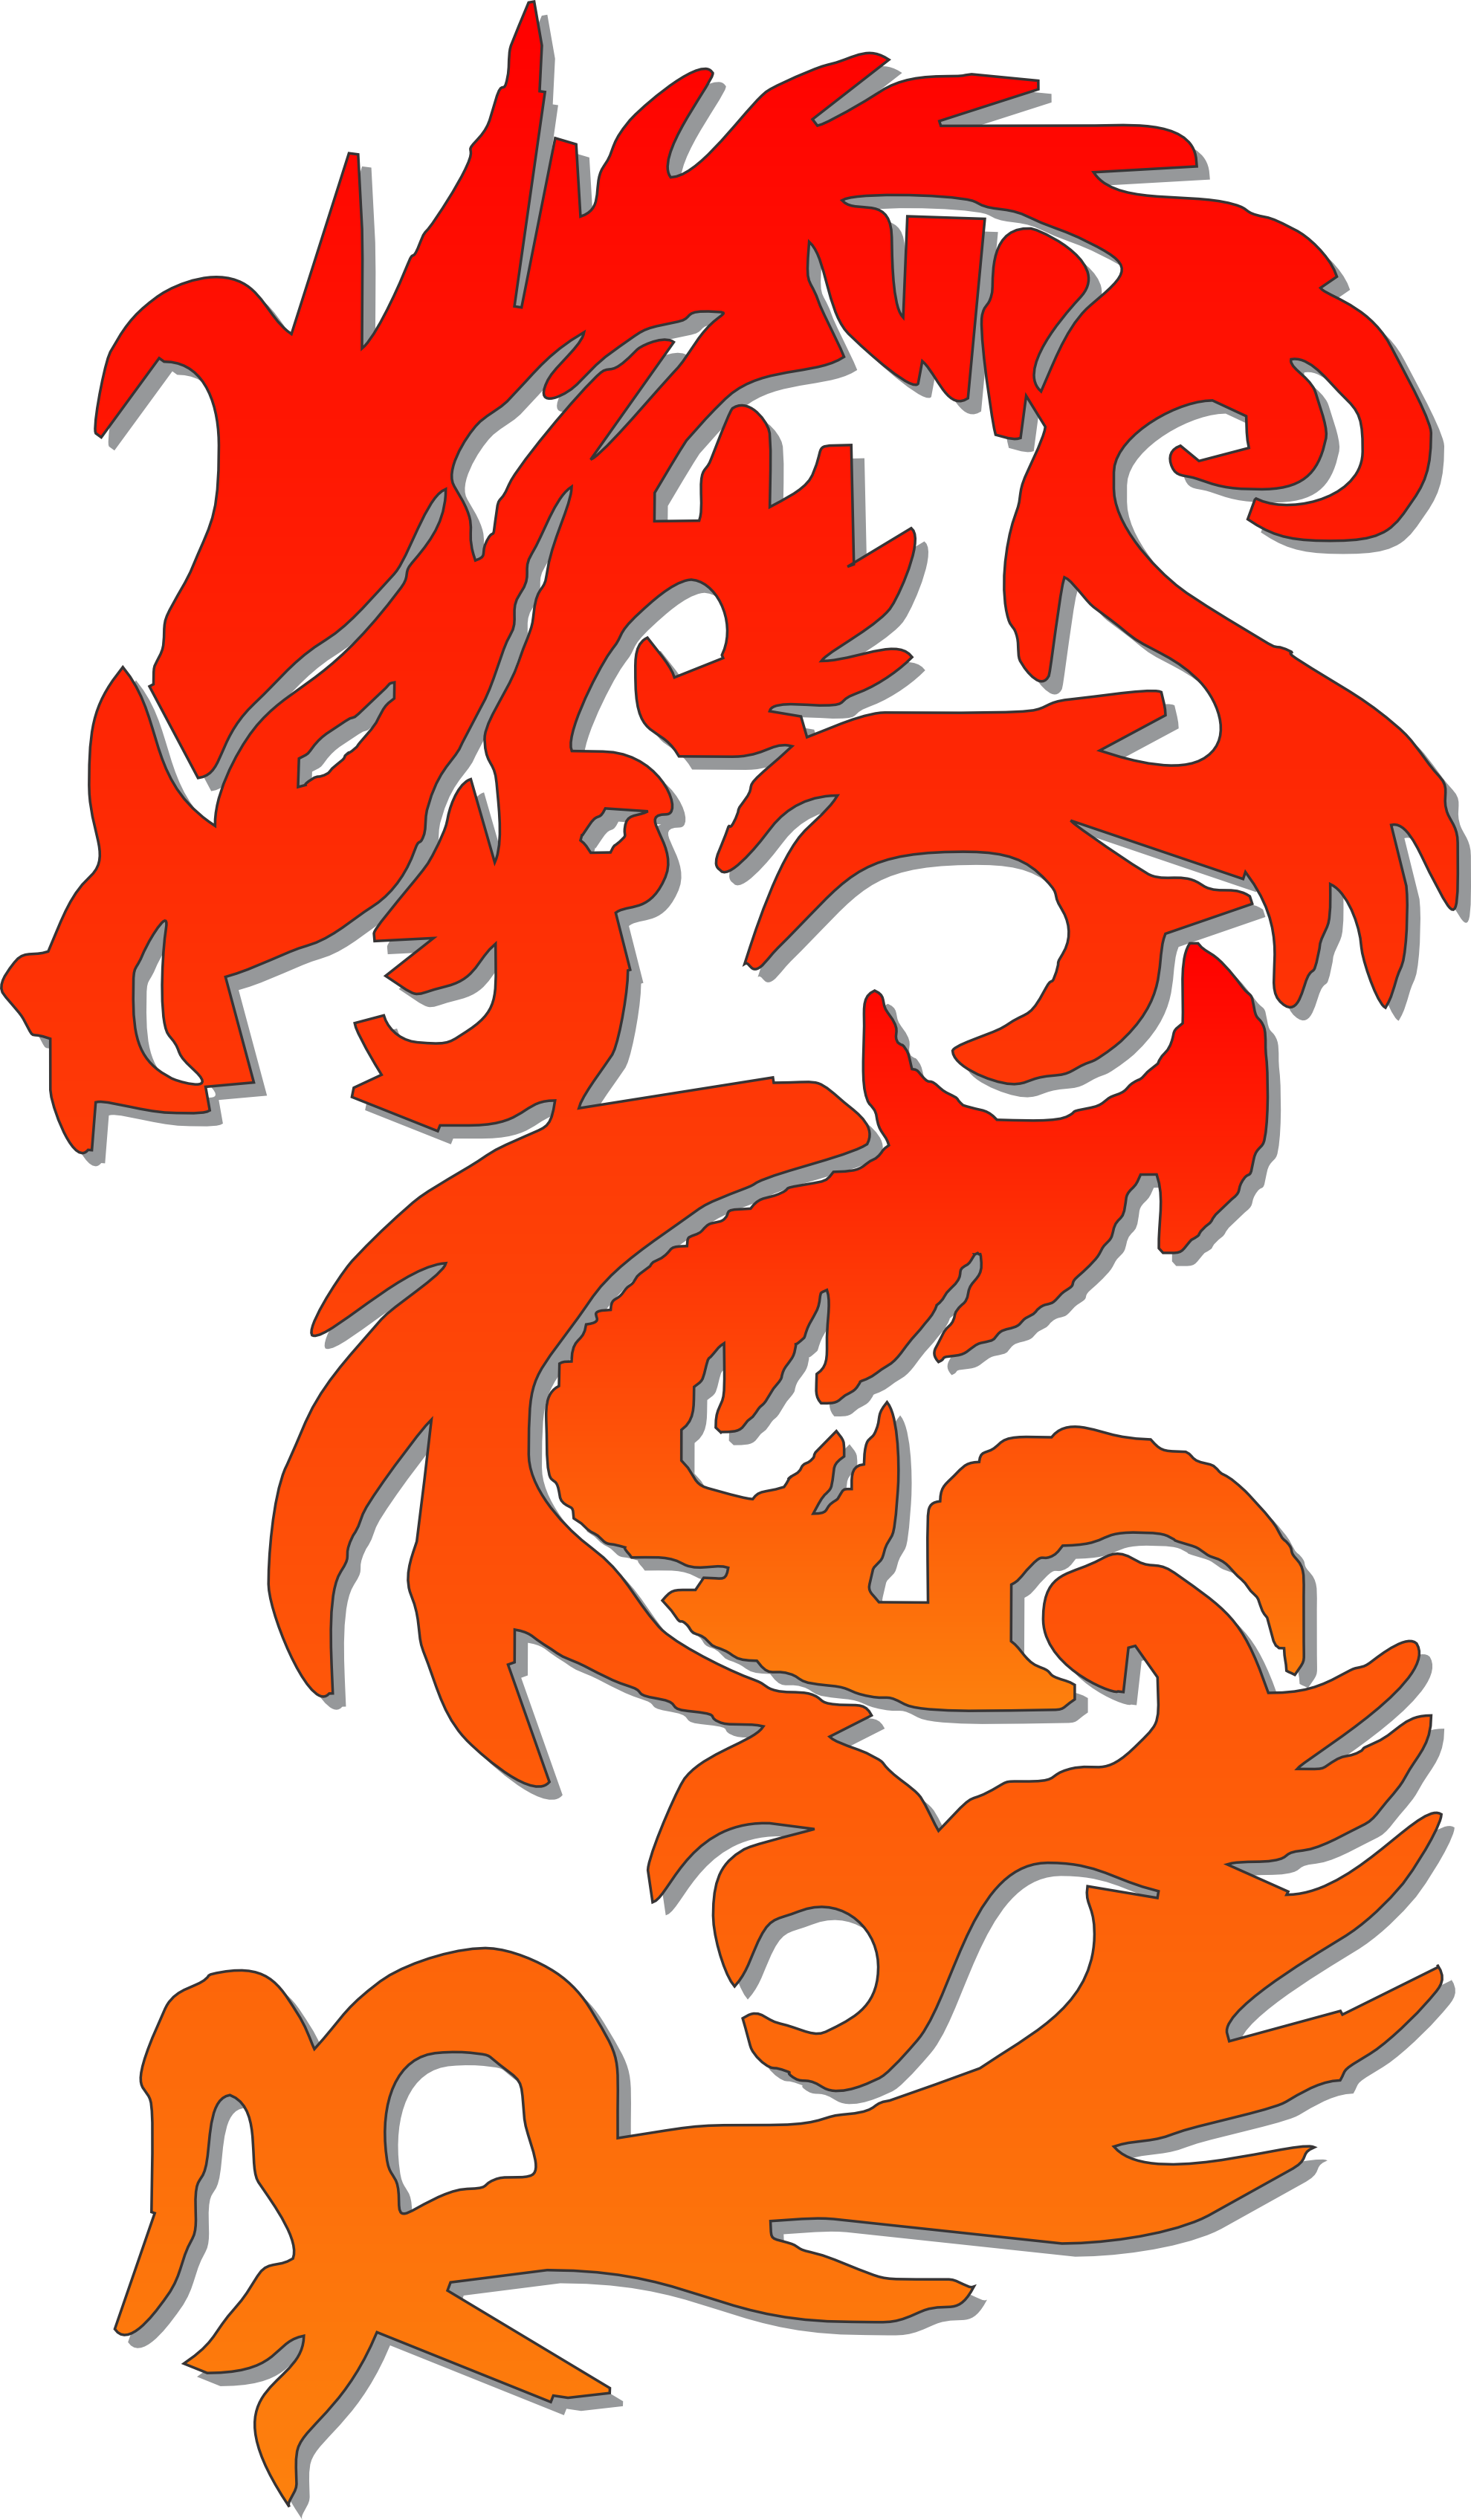 Chinese Dragons Images - Cliparts.co